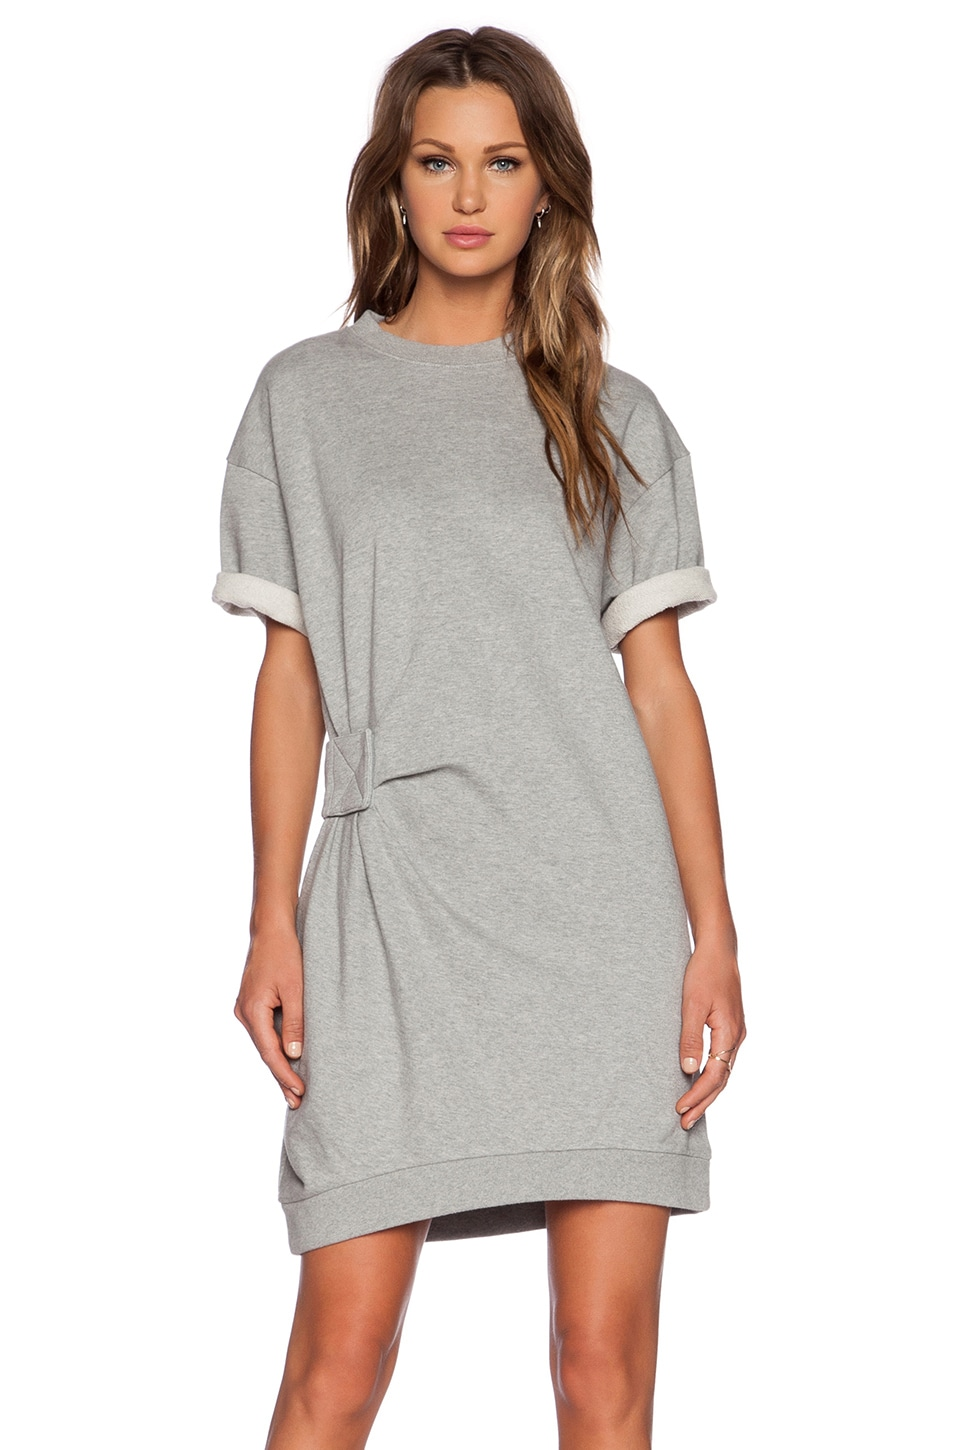 Marc by Marc Jacobs Rylie Sweatshirt Dress in Grey Melange